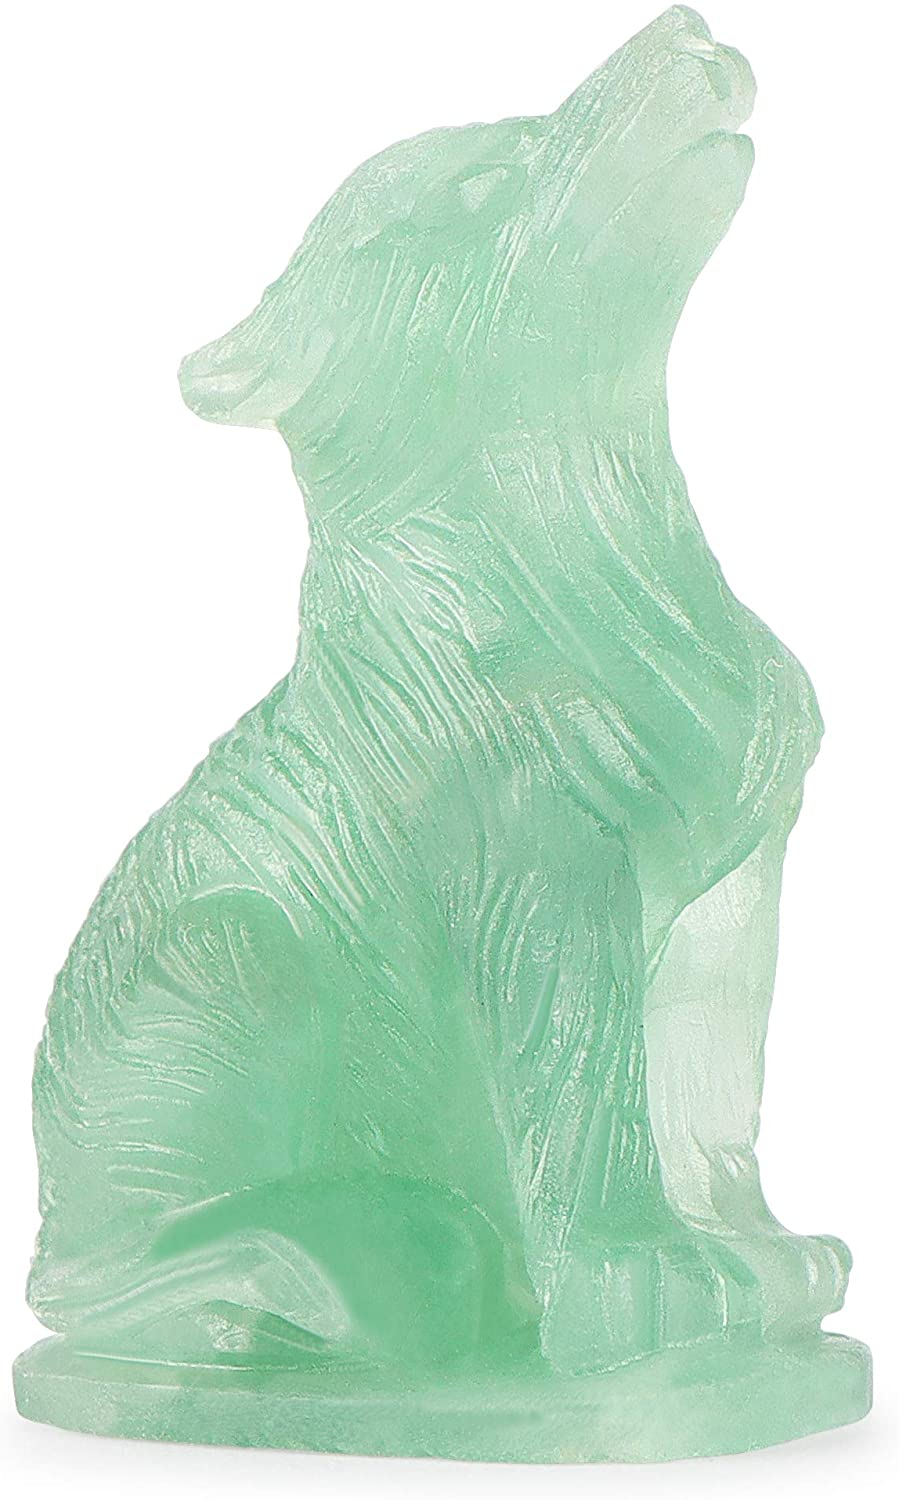 crystals green crystals meaning healing benefits